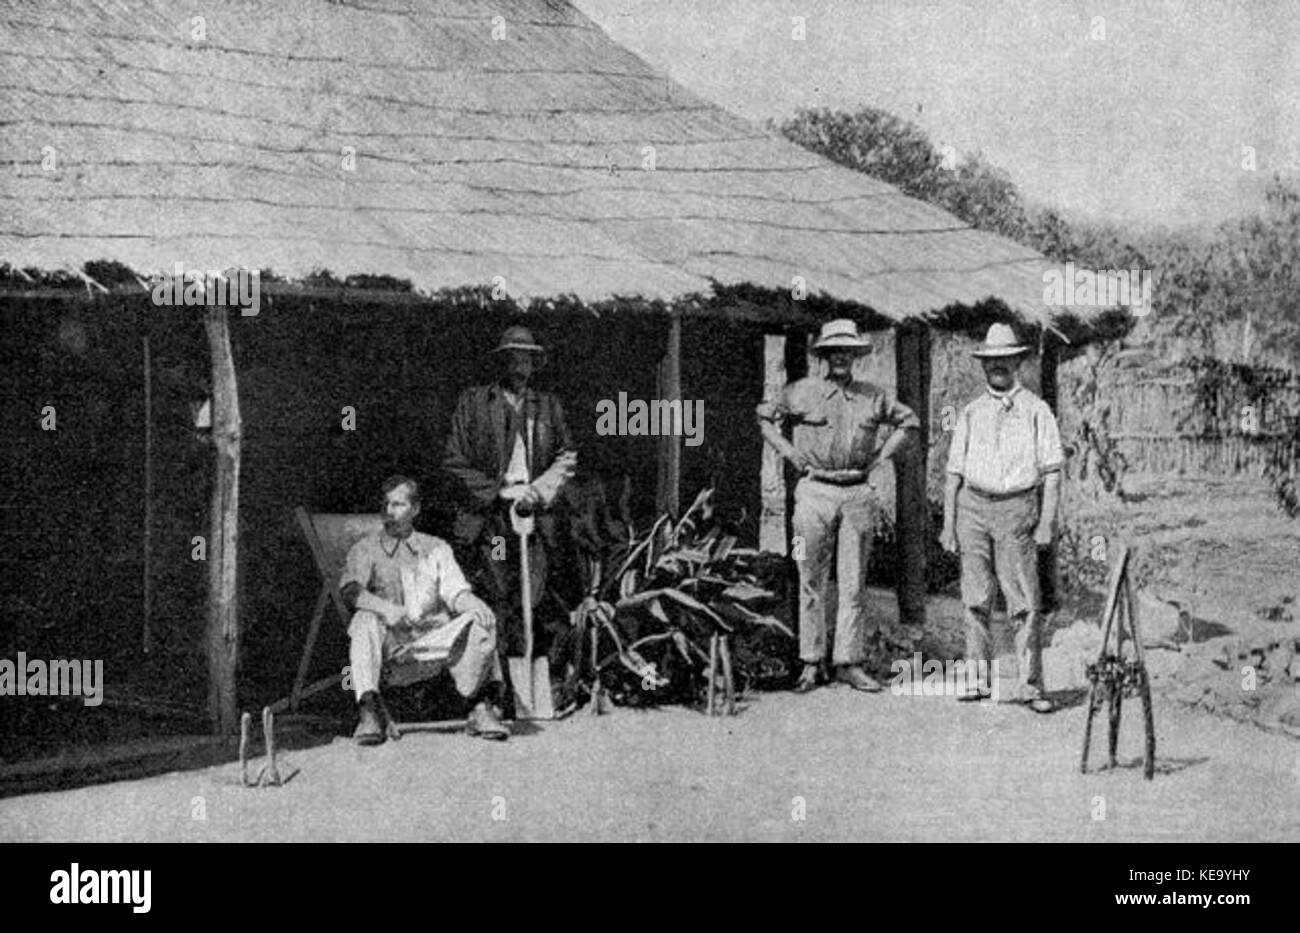 BSAC settlers Southern Rhodesia - Stock Image